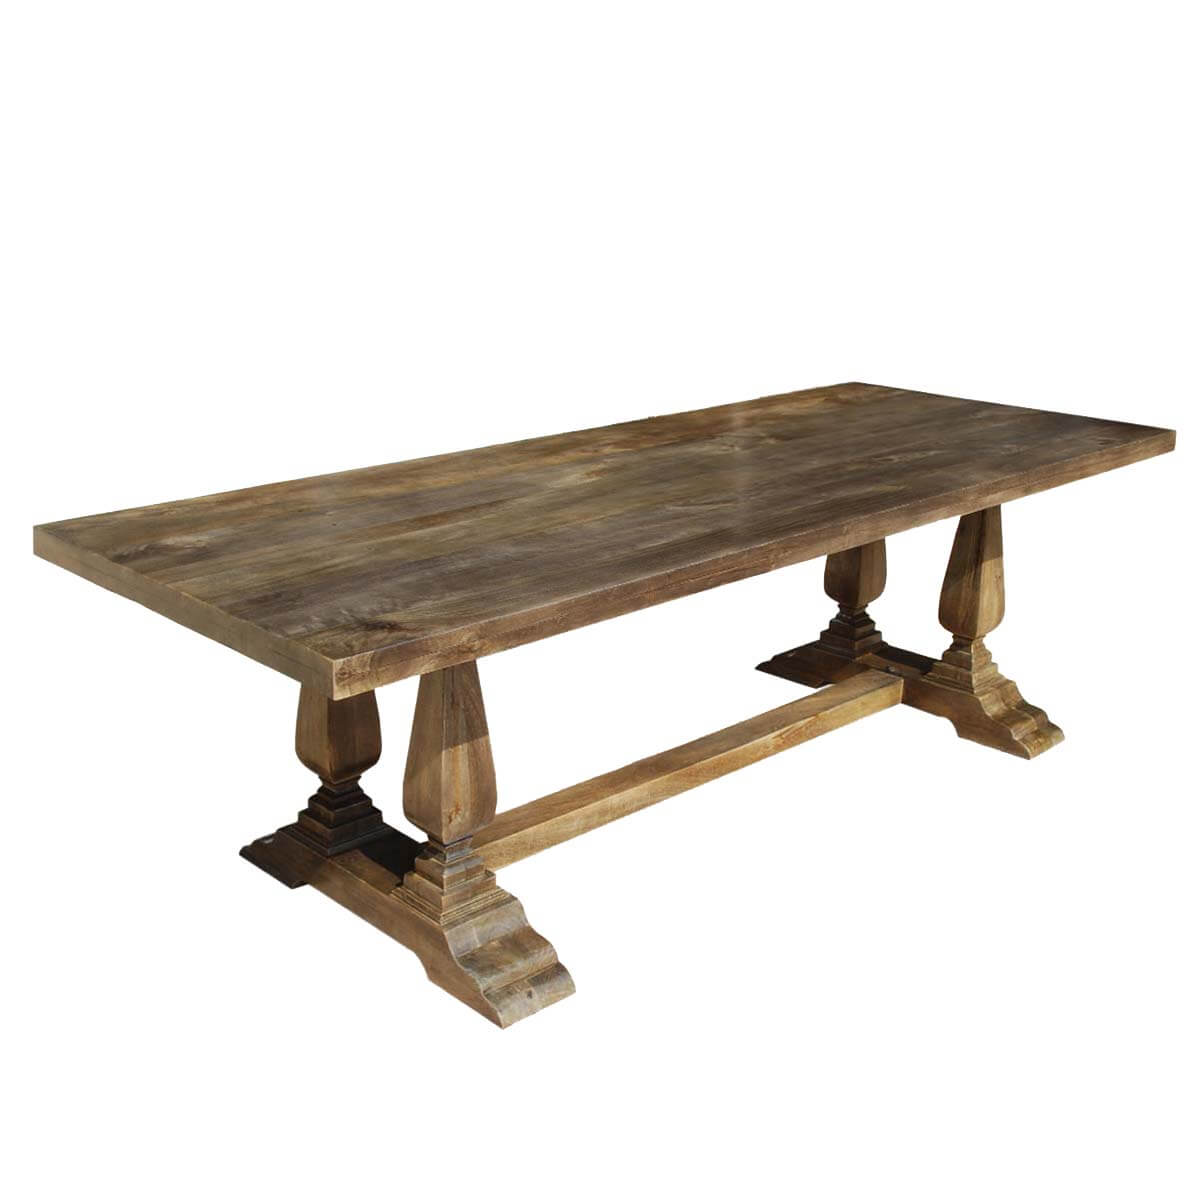 "Pelham Rustic 98"" Solid Wood Trestle Pedestal Dining Table"